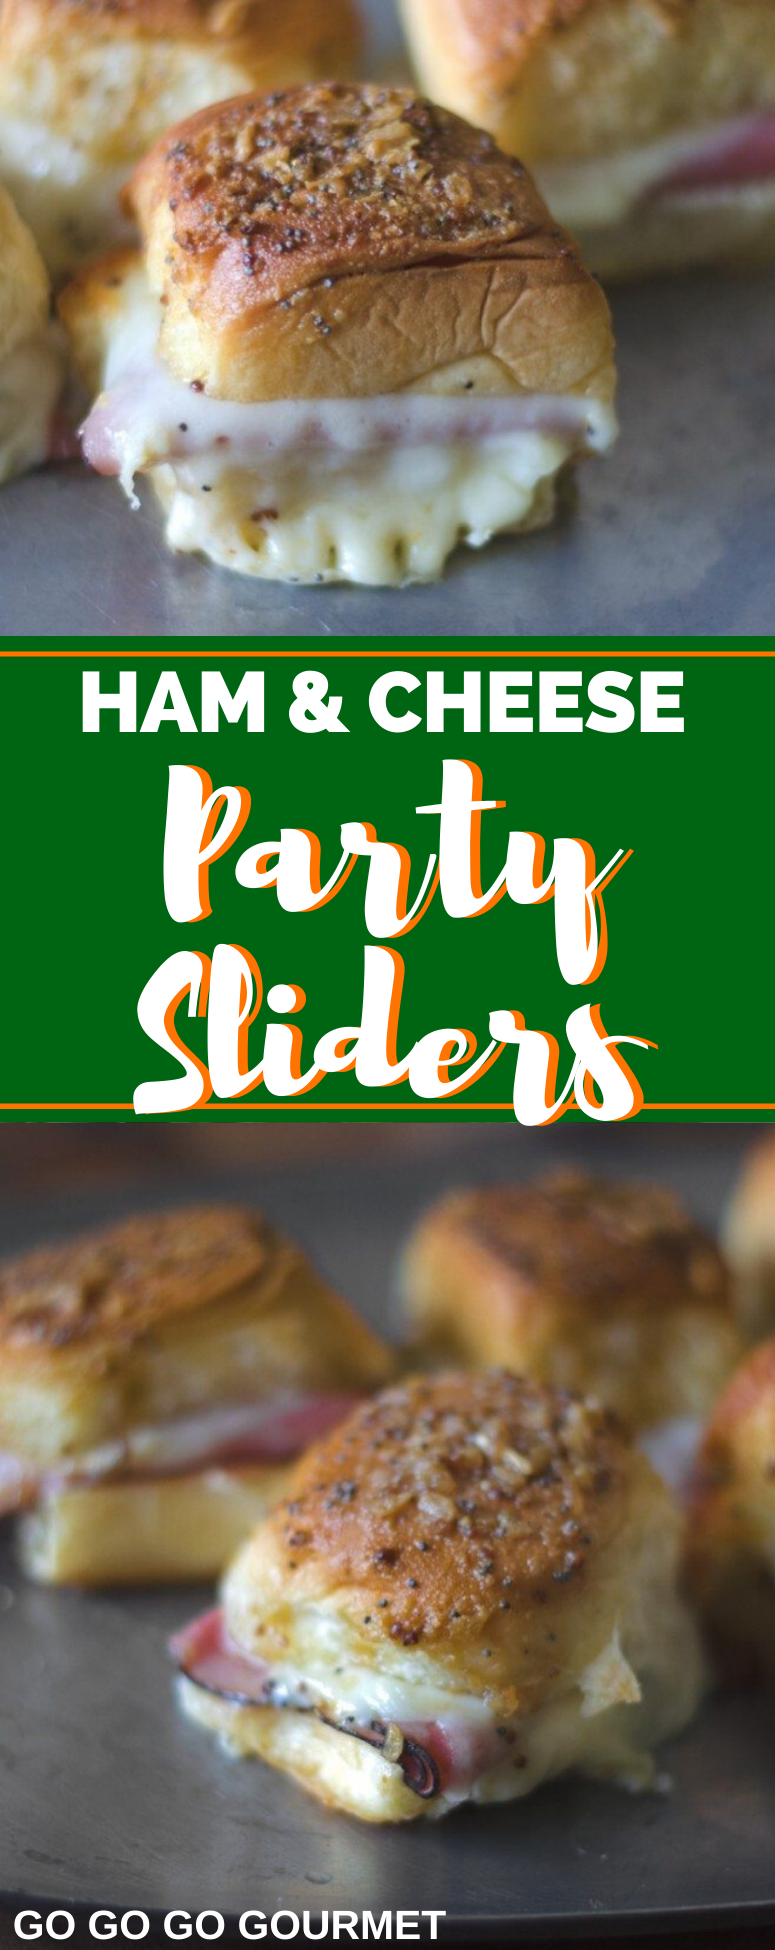 These hot little ham and cheese sliders baked on Hawaiian buns are so easy to make for a crowd as a holiday appetizer or party! The brown sugar and onion topping is killer! #gogogogourmet #appetizersforacrowd #ham #appetizer #appetizerfood via @gogogogourmet